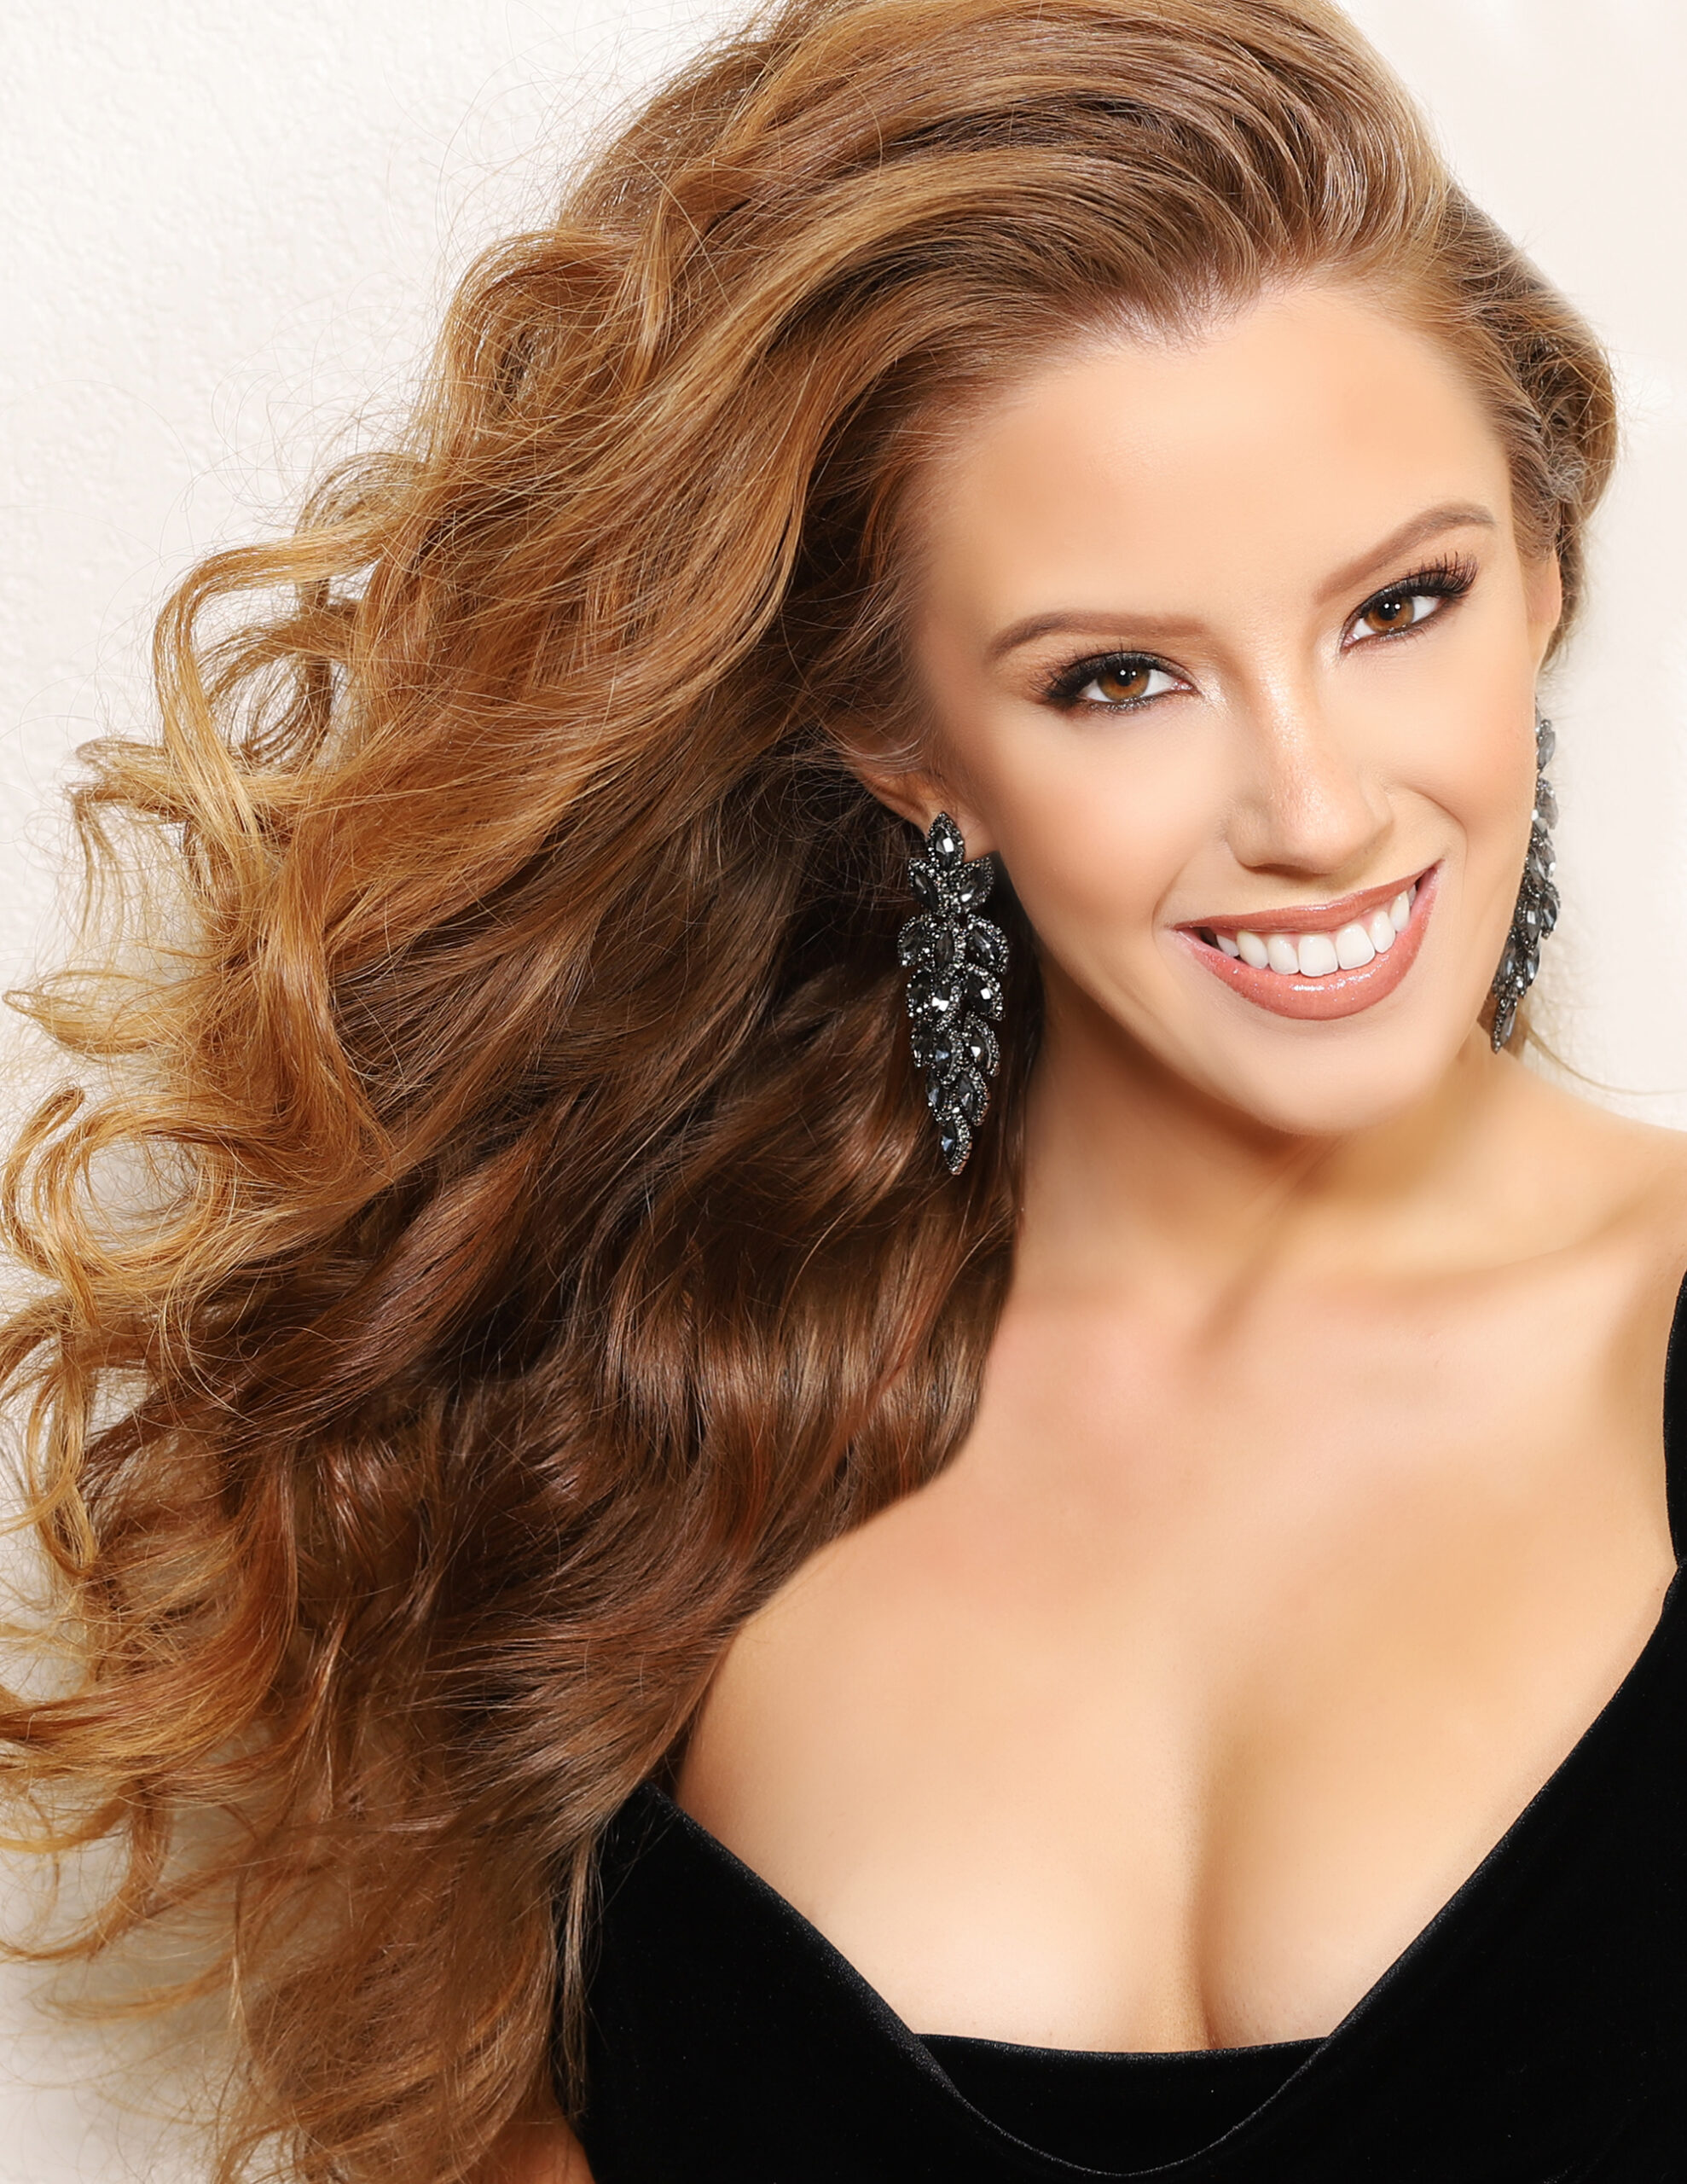 Kelsey Kelleher MISS COPPER STATE USA